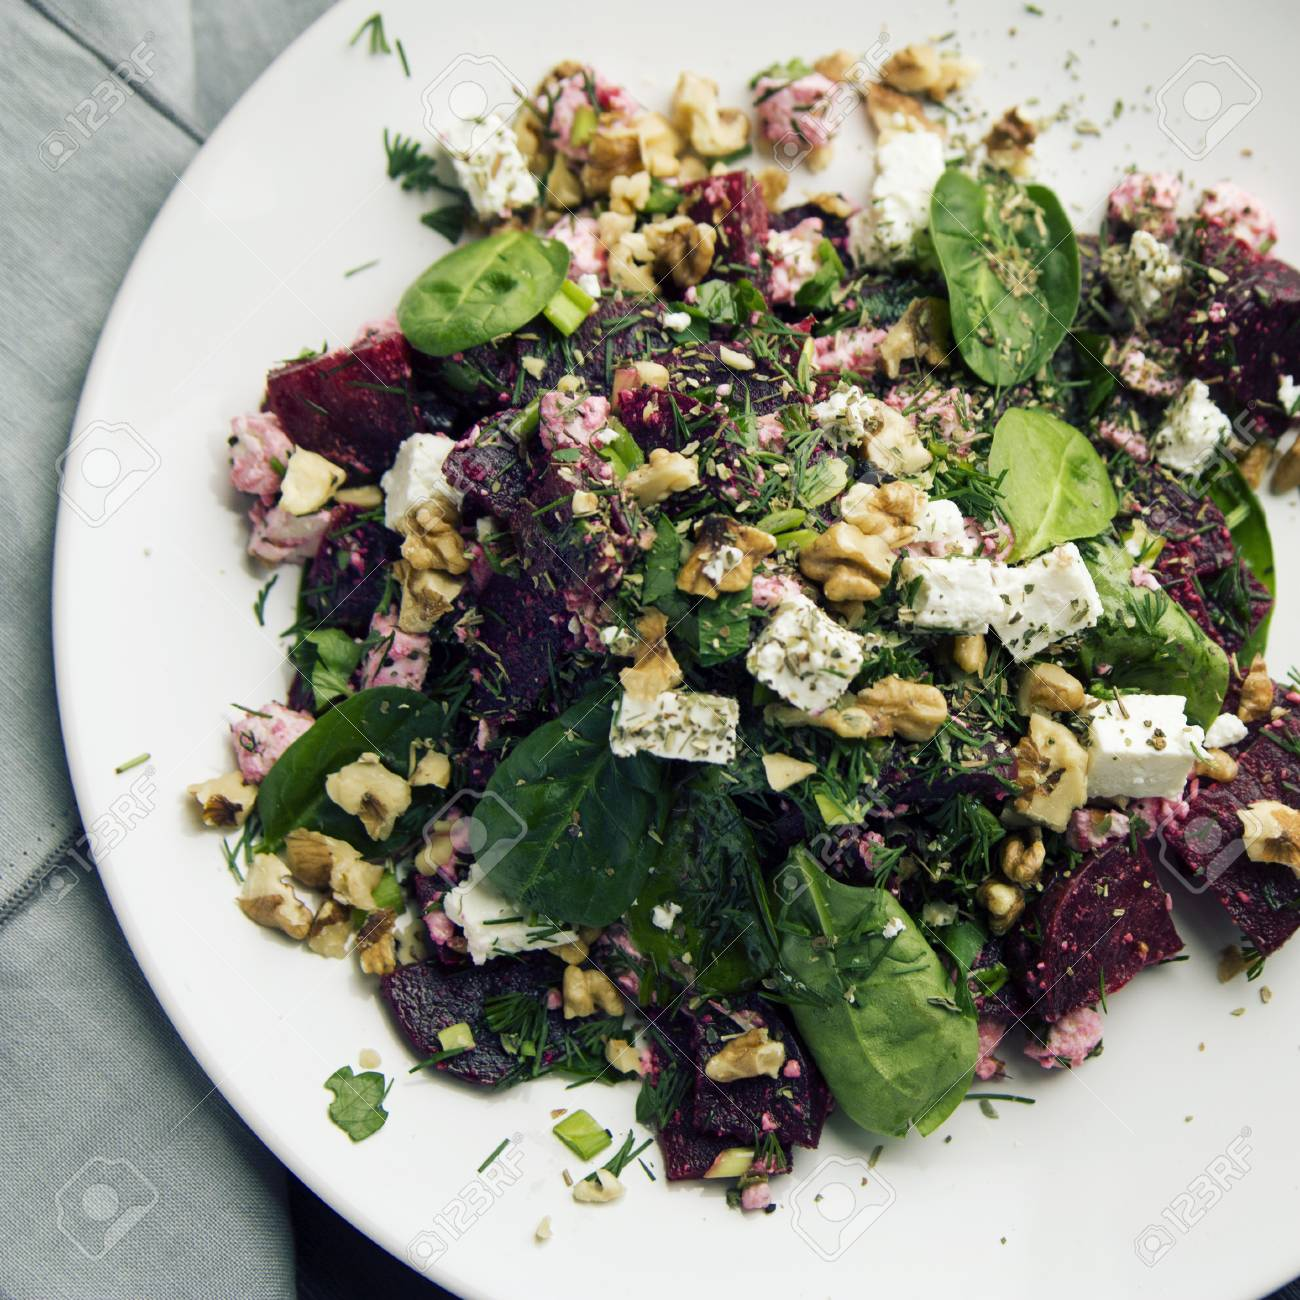 Beetroot Salad With Cottage Cheese Baby Spinach And Walnuts Stock Photo Picture And Royalty Free Image Image 100087201